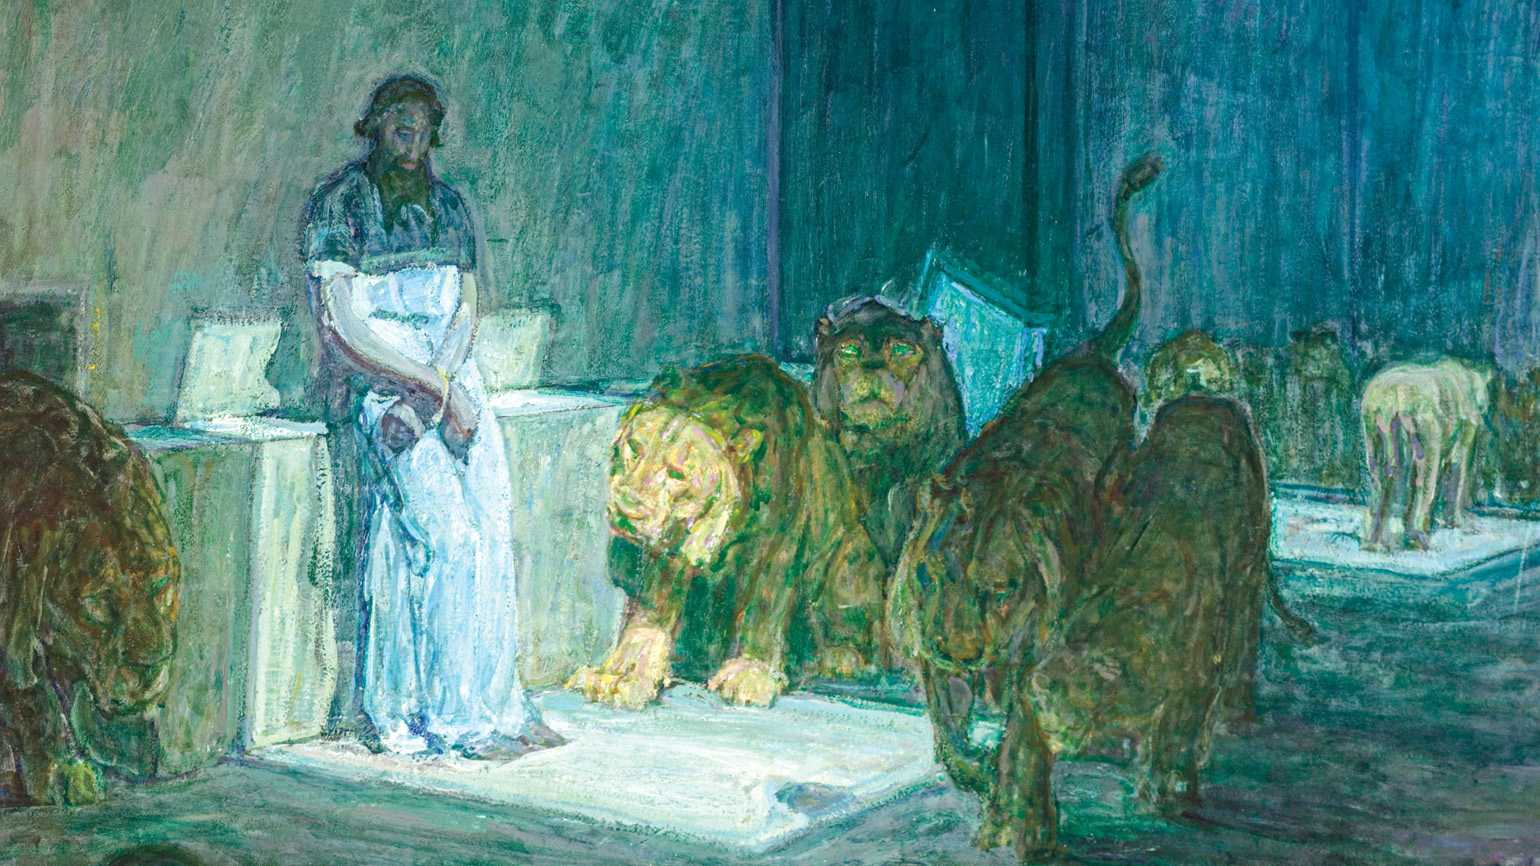 Daniel in the den of lions; Photo credit: LACMA - The Los Angeles County Museum Of Art